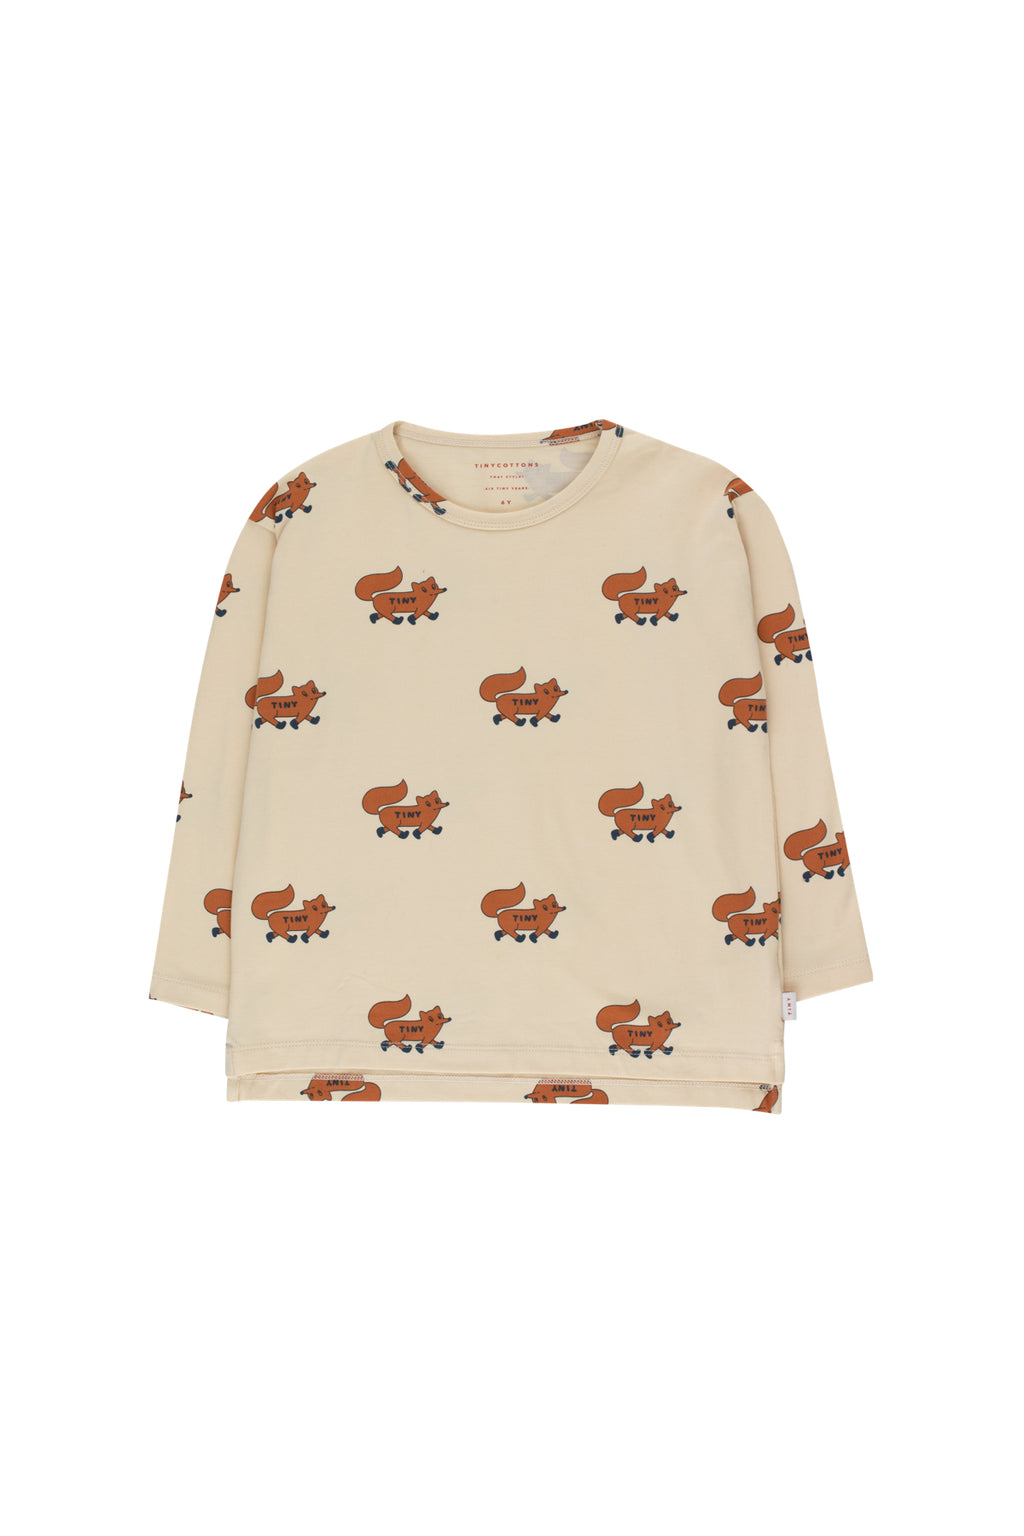 Tiny Cottons Foxes Tee - Cream/Brown